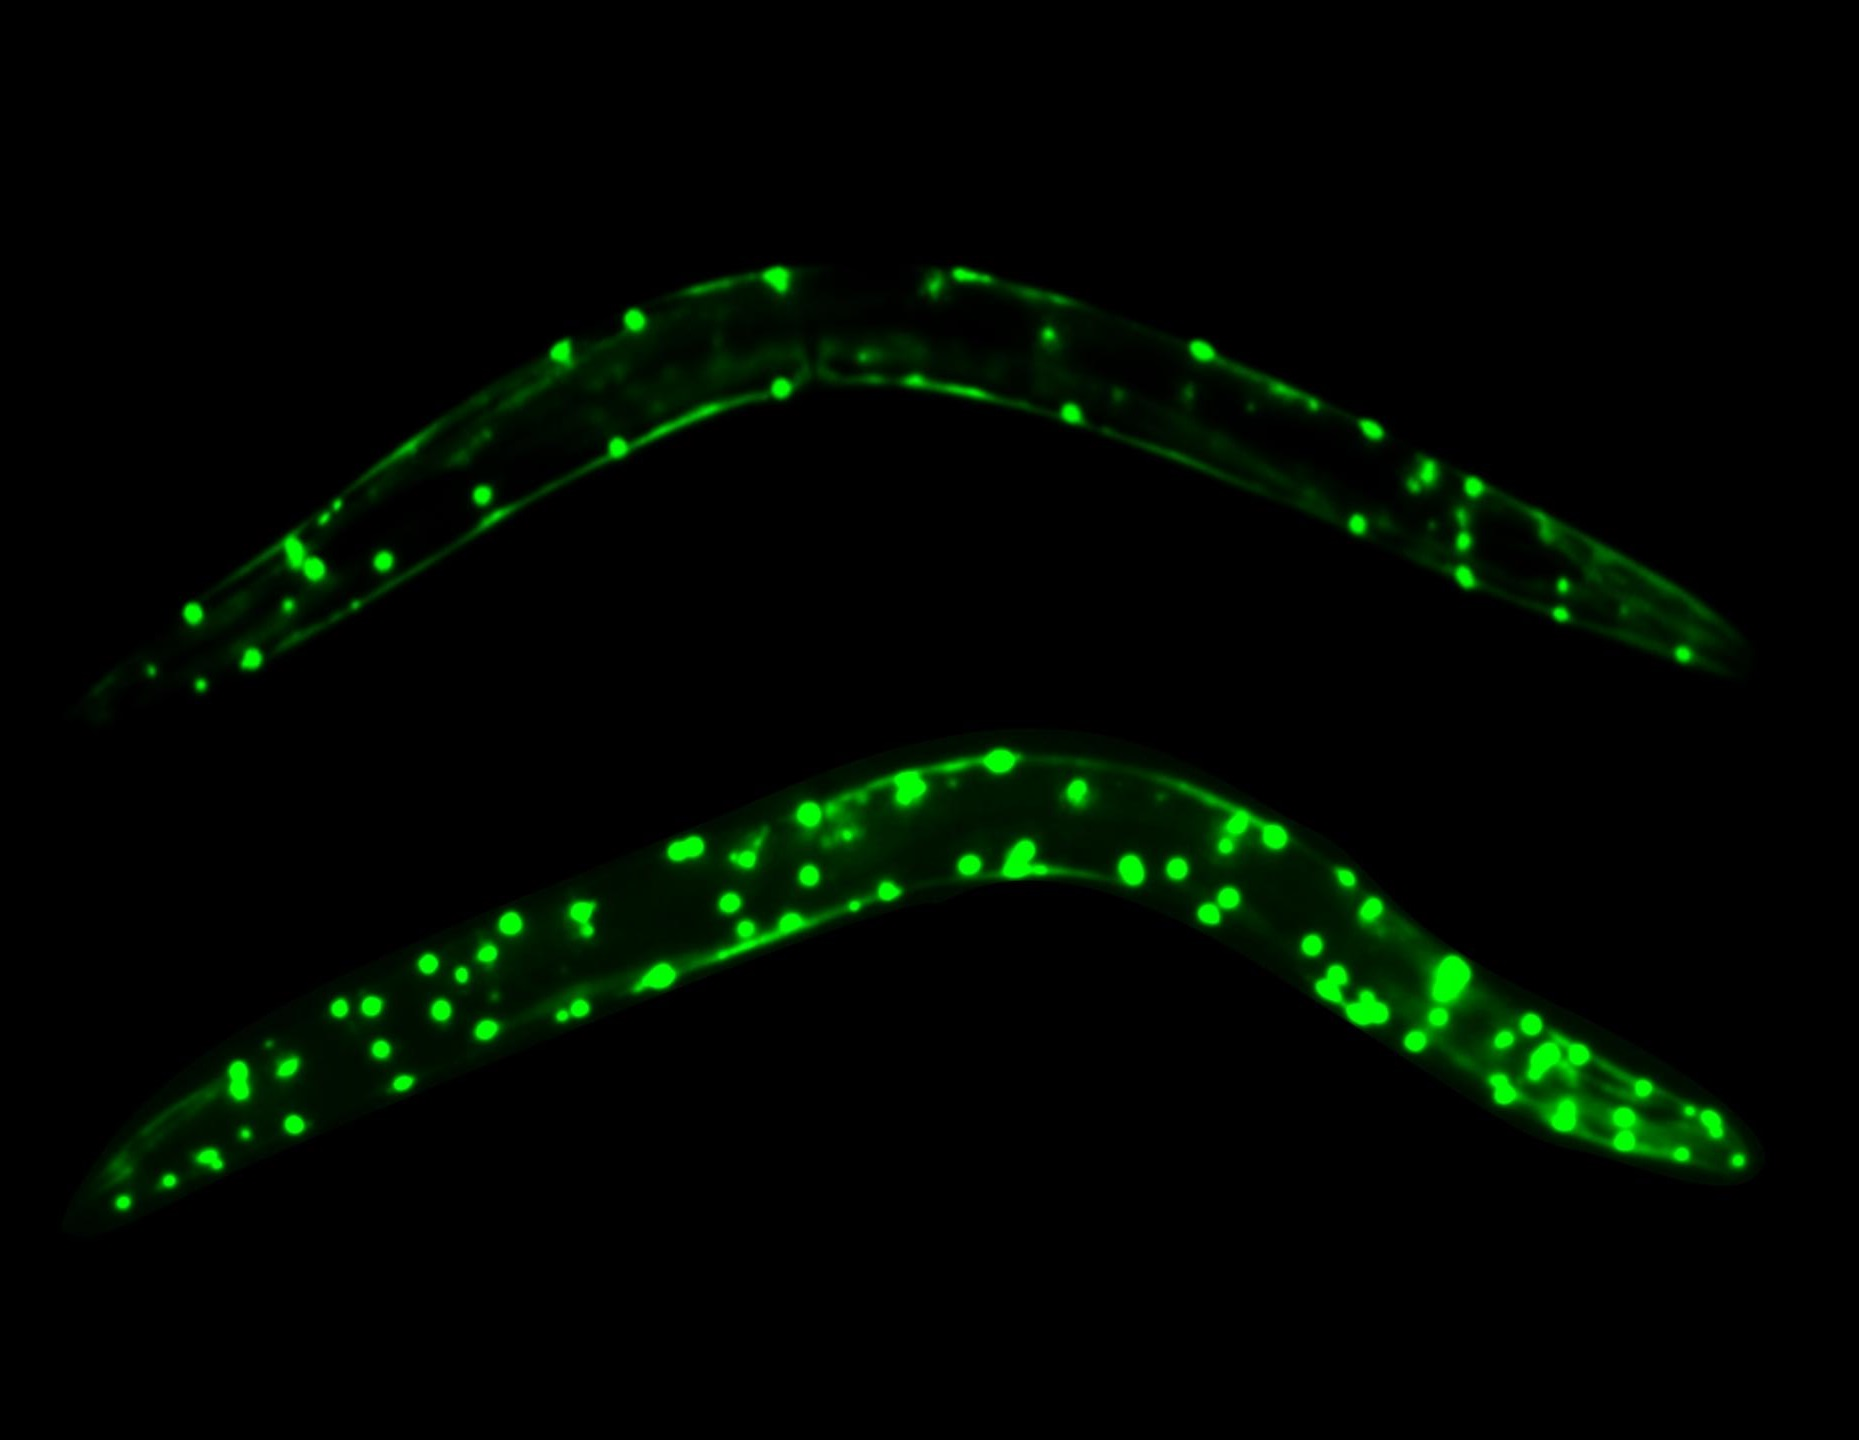 When you decrease autophagy the disease process is exacerbated and when you increase it you get the opposite effect. Aggregation of polyglutamine expansion protein is a hallmark of Huntington's disease and other neurodegenerative diseases. The picture shows that there are more aggregates of green fluorescence protein-labelled polyglutamine expansion protein in autophagy deficient worms (bottom) compared to normal animals (top). Credit: Florida Atlantic University